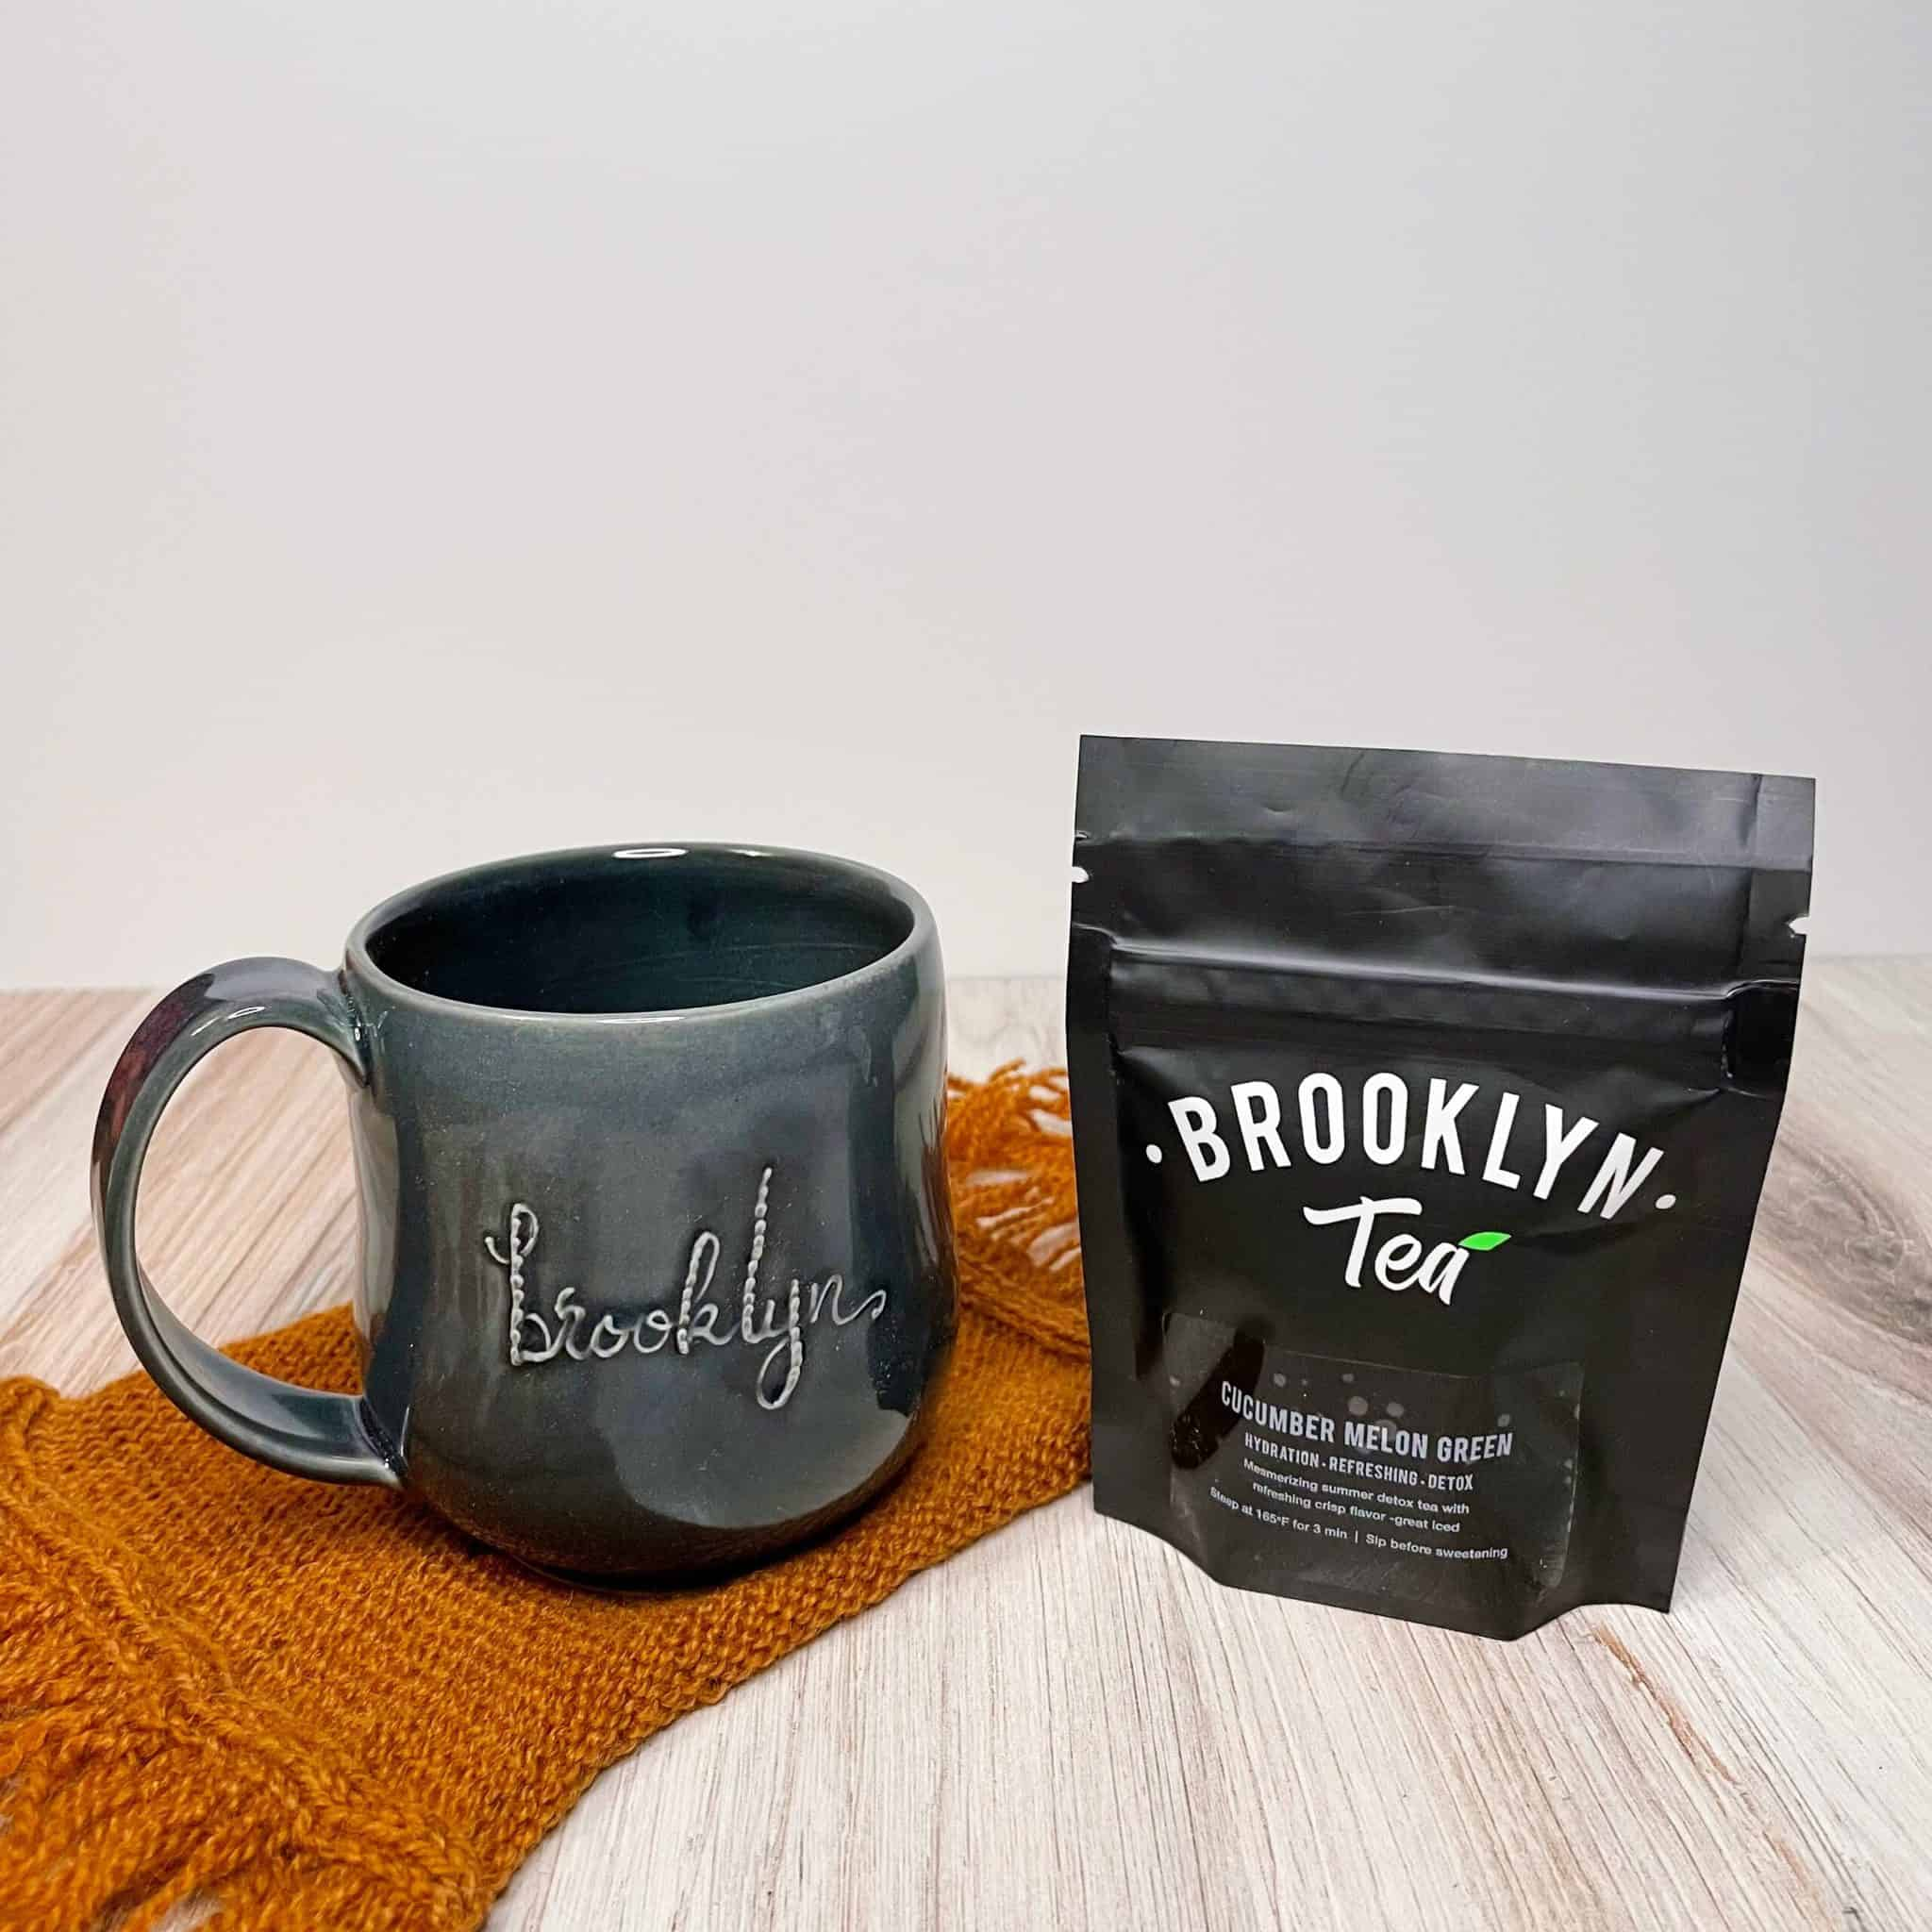 A gray mug with Brooklyn in script sits on an orange swatch of knitting next to a black pouch of Brooklyn Tea.